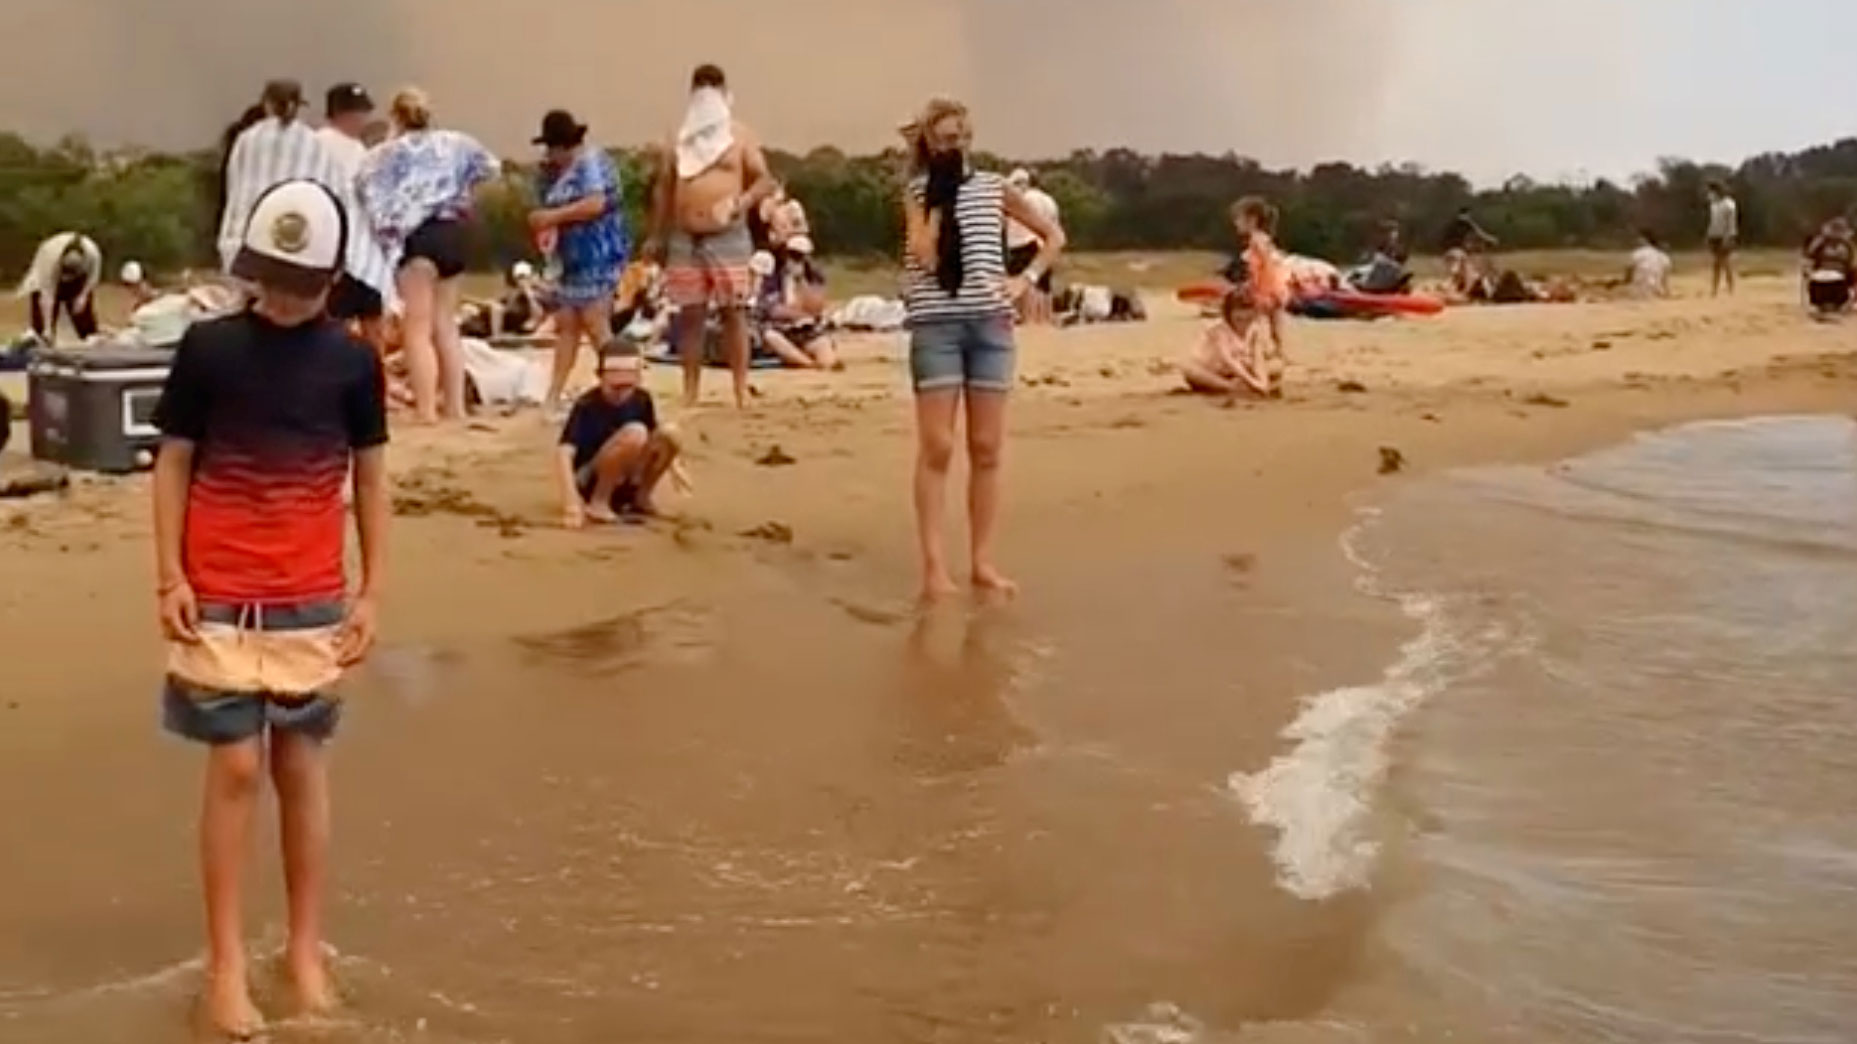 Australian Beaches By Dangerous Bushfires